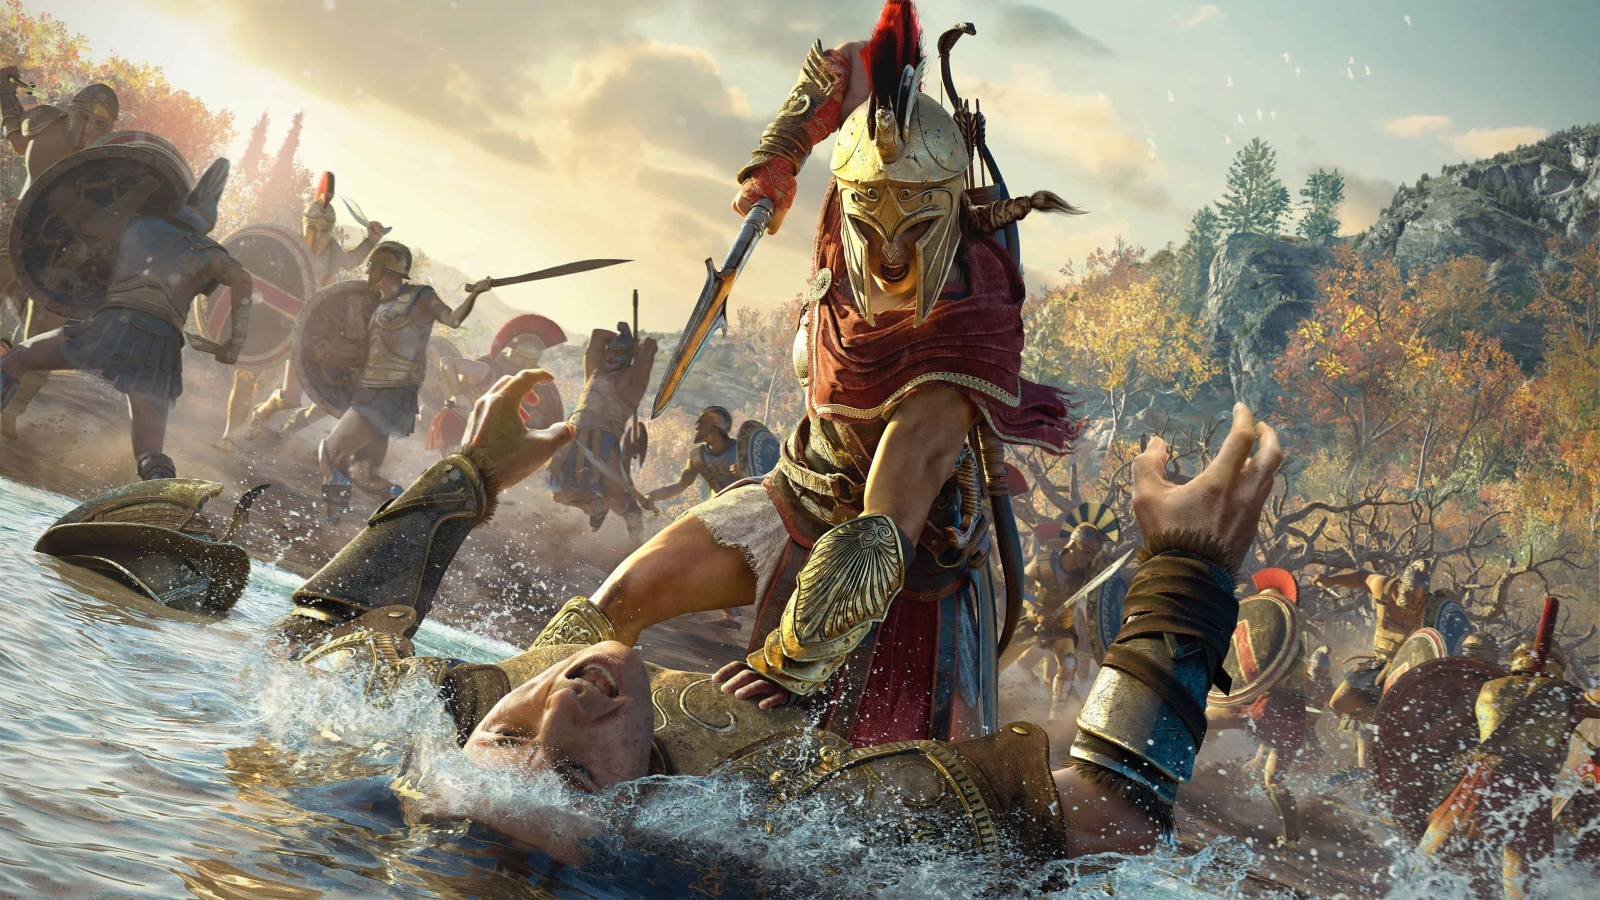 Assassin's Creed Odyssey got a story creation mode, and players just used it to farm XP screenshot